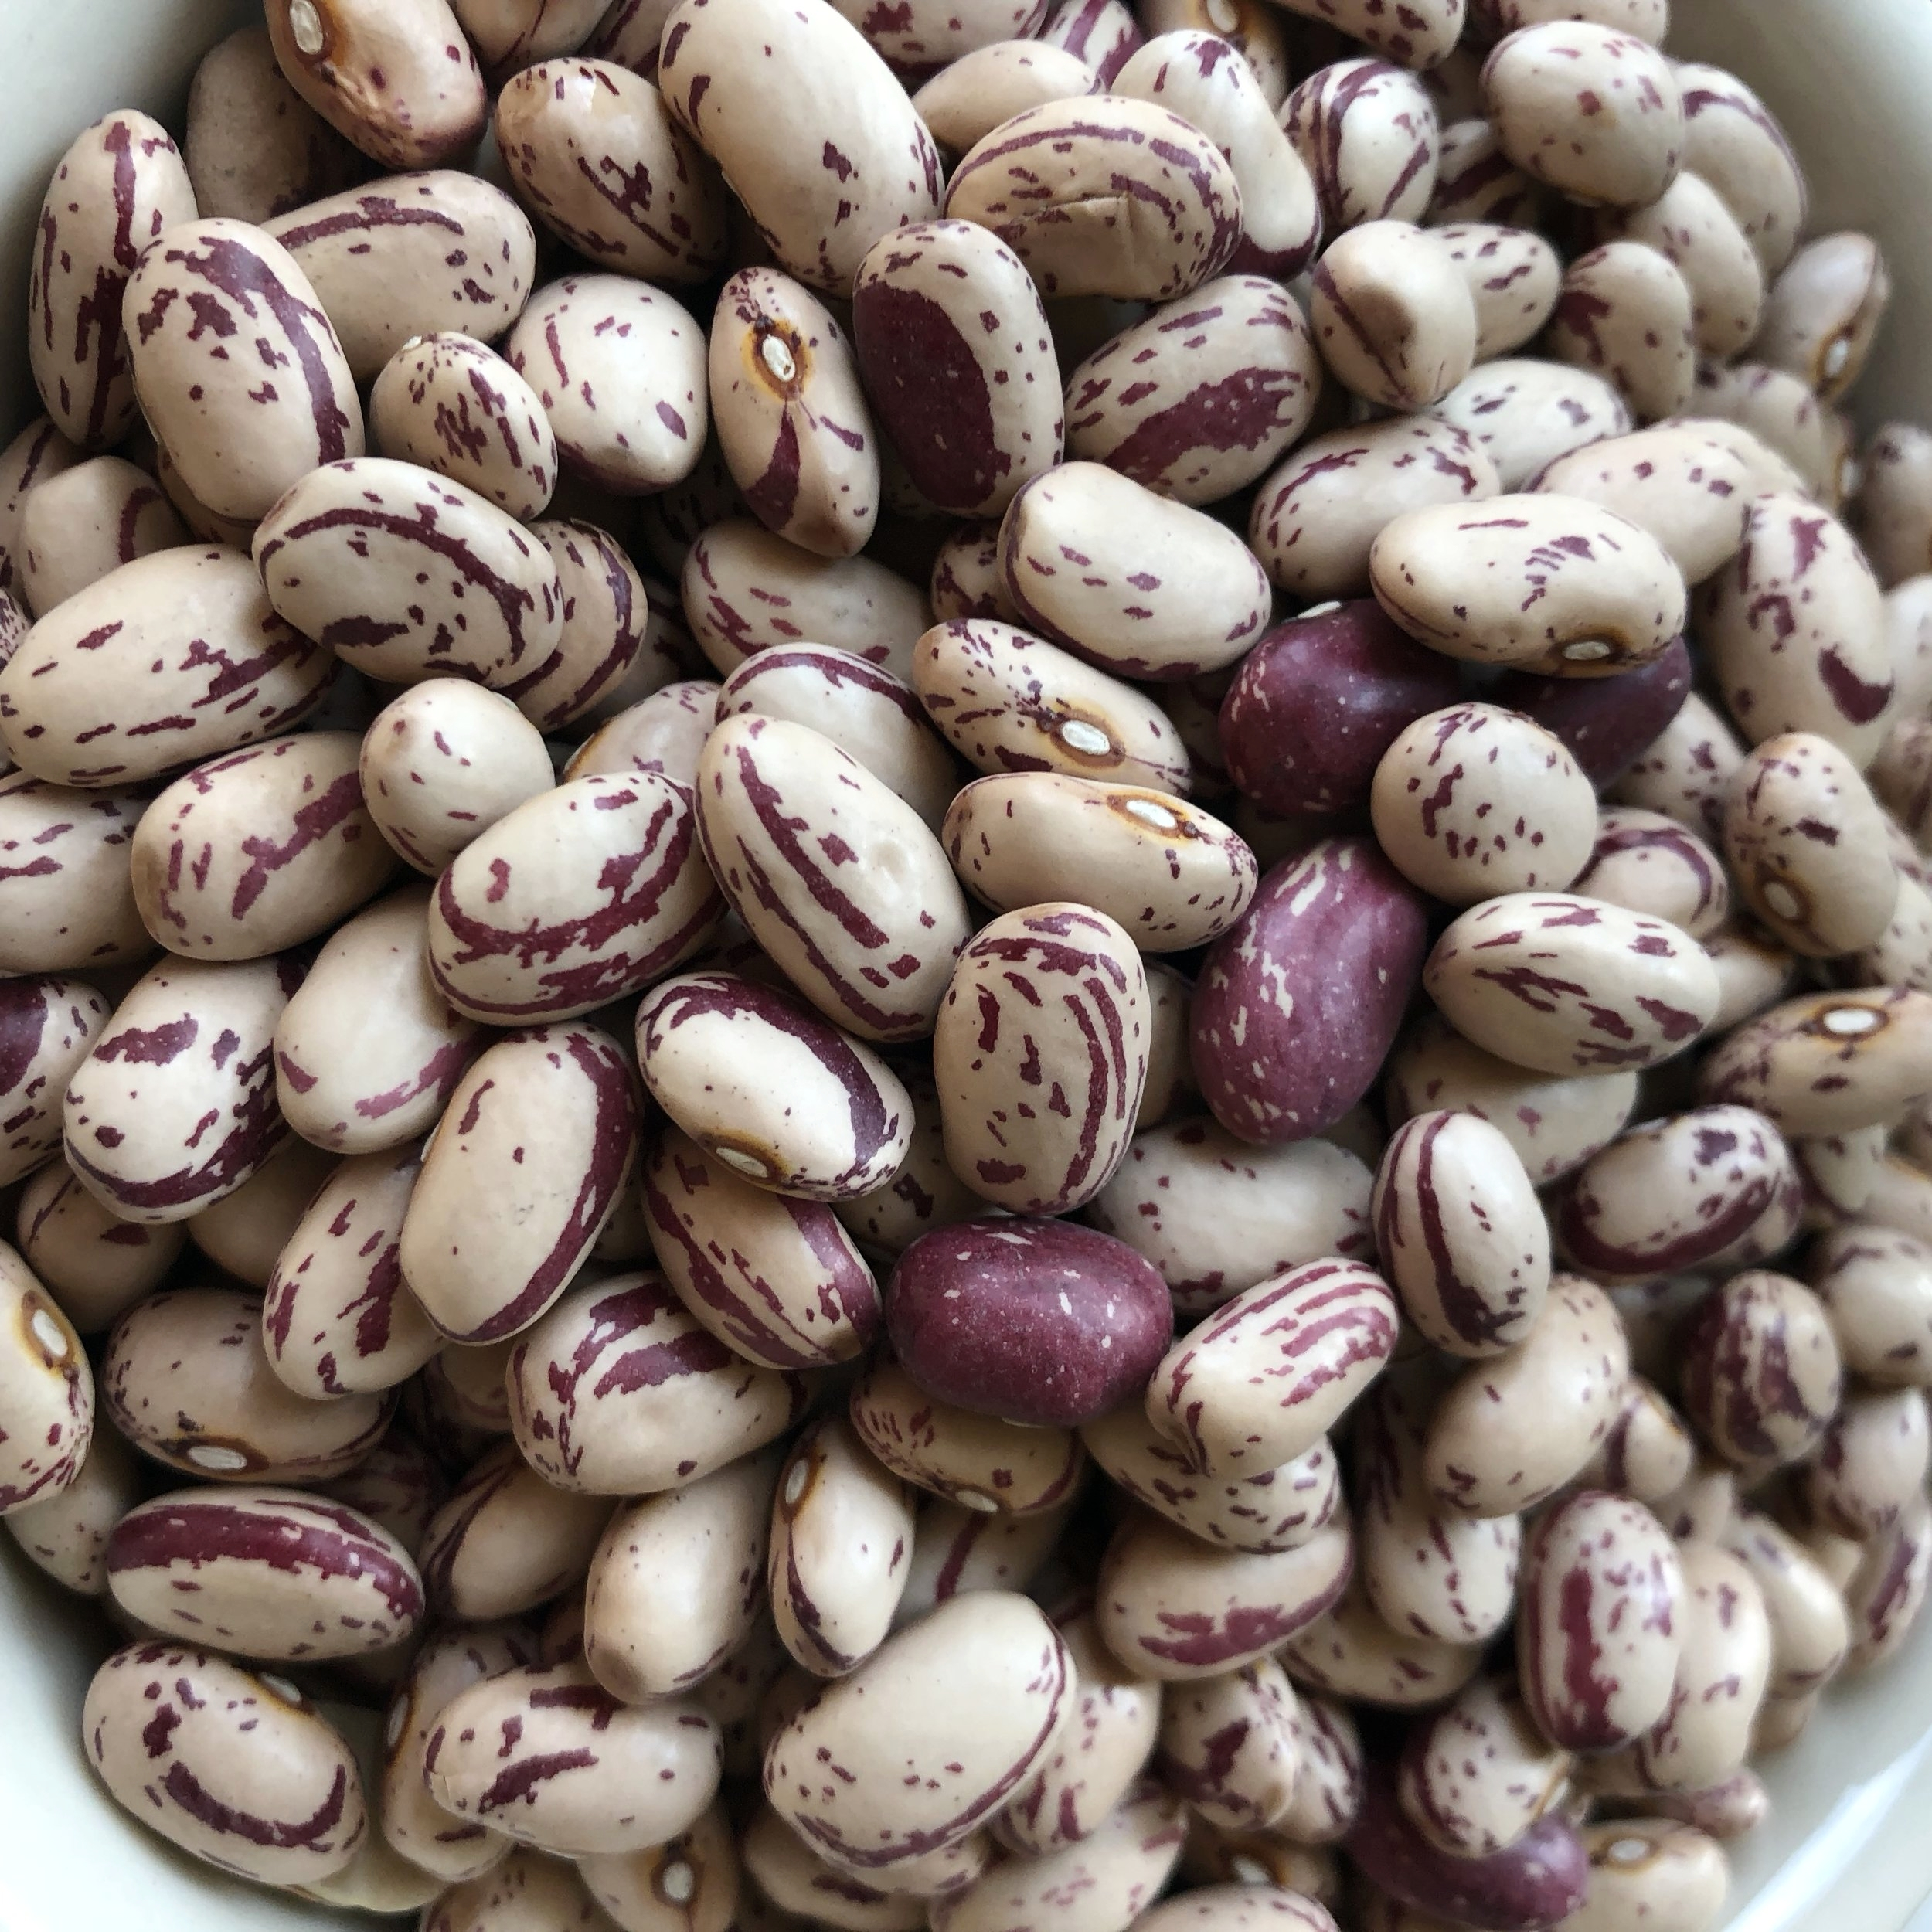 "Note on beans: Traditional New England succotash uses cranberry or ""cattle beans"" like the ones pictured here. See that beautiful cranberry color marbled throughout? If you can get fresh cranberry beans straight from the shell for your summer succotash, that is ideal. Or substitute fresh shelling peas, snap peas, green beans, or lima beans. You can also cook up the dried ones, like you make any dried bean and add to the succotash at the very end."